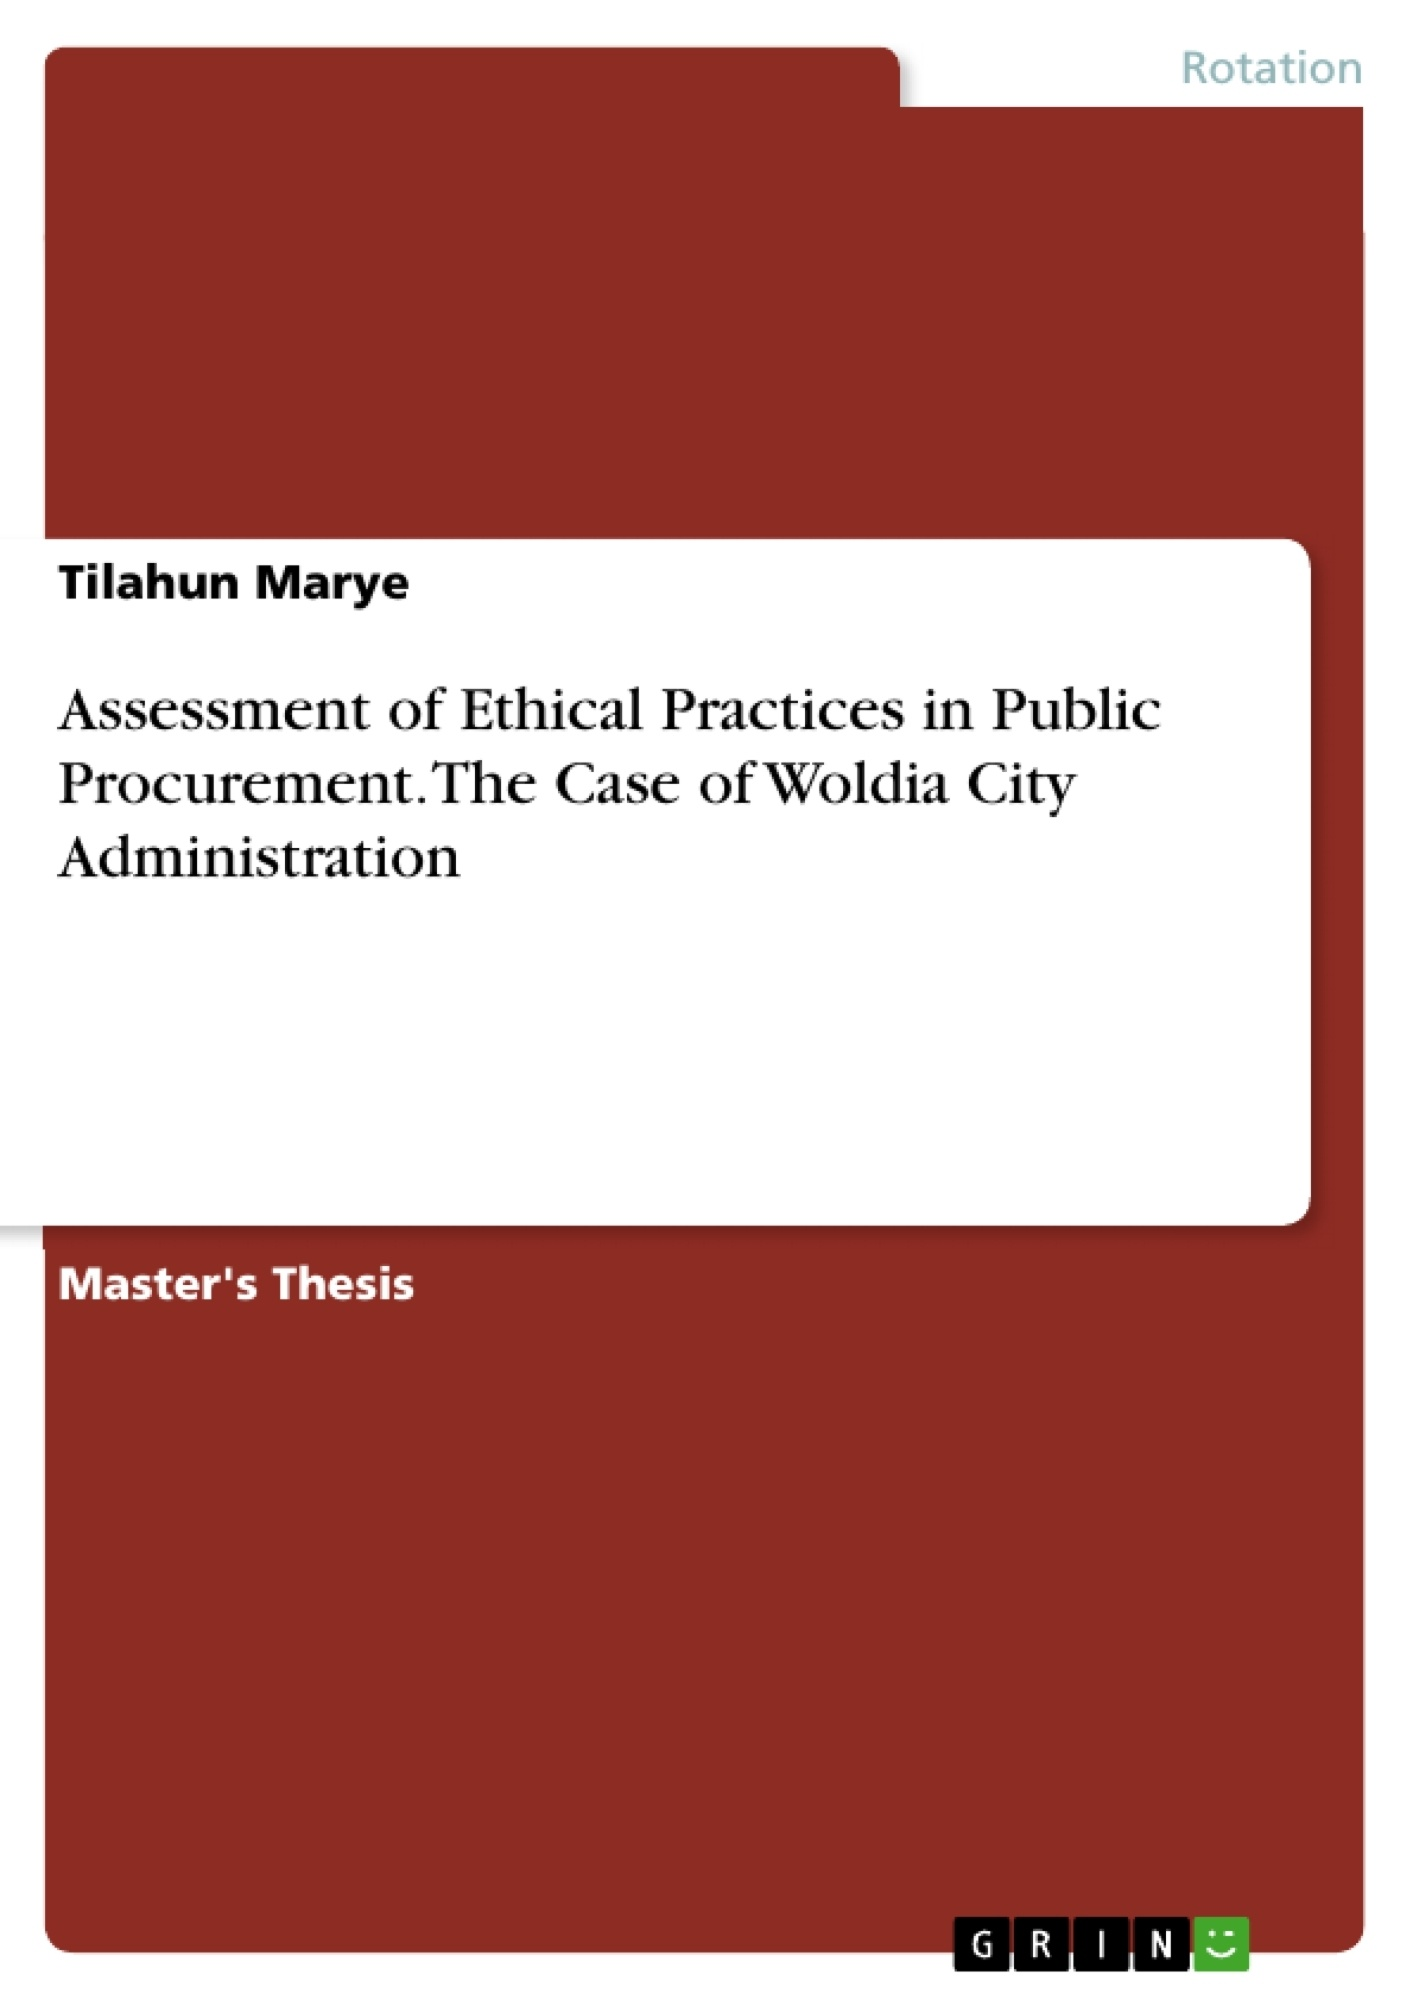 Accountability and transparency in public procurement process and thesis